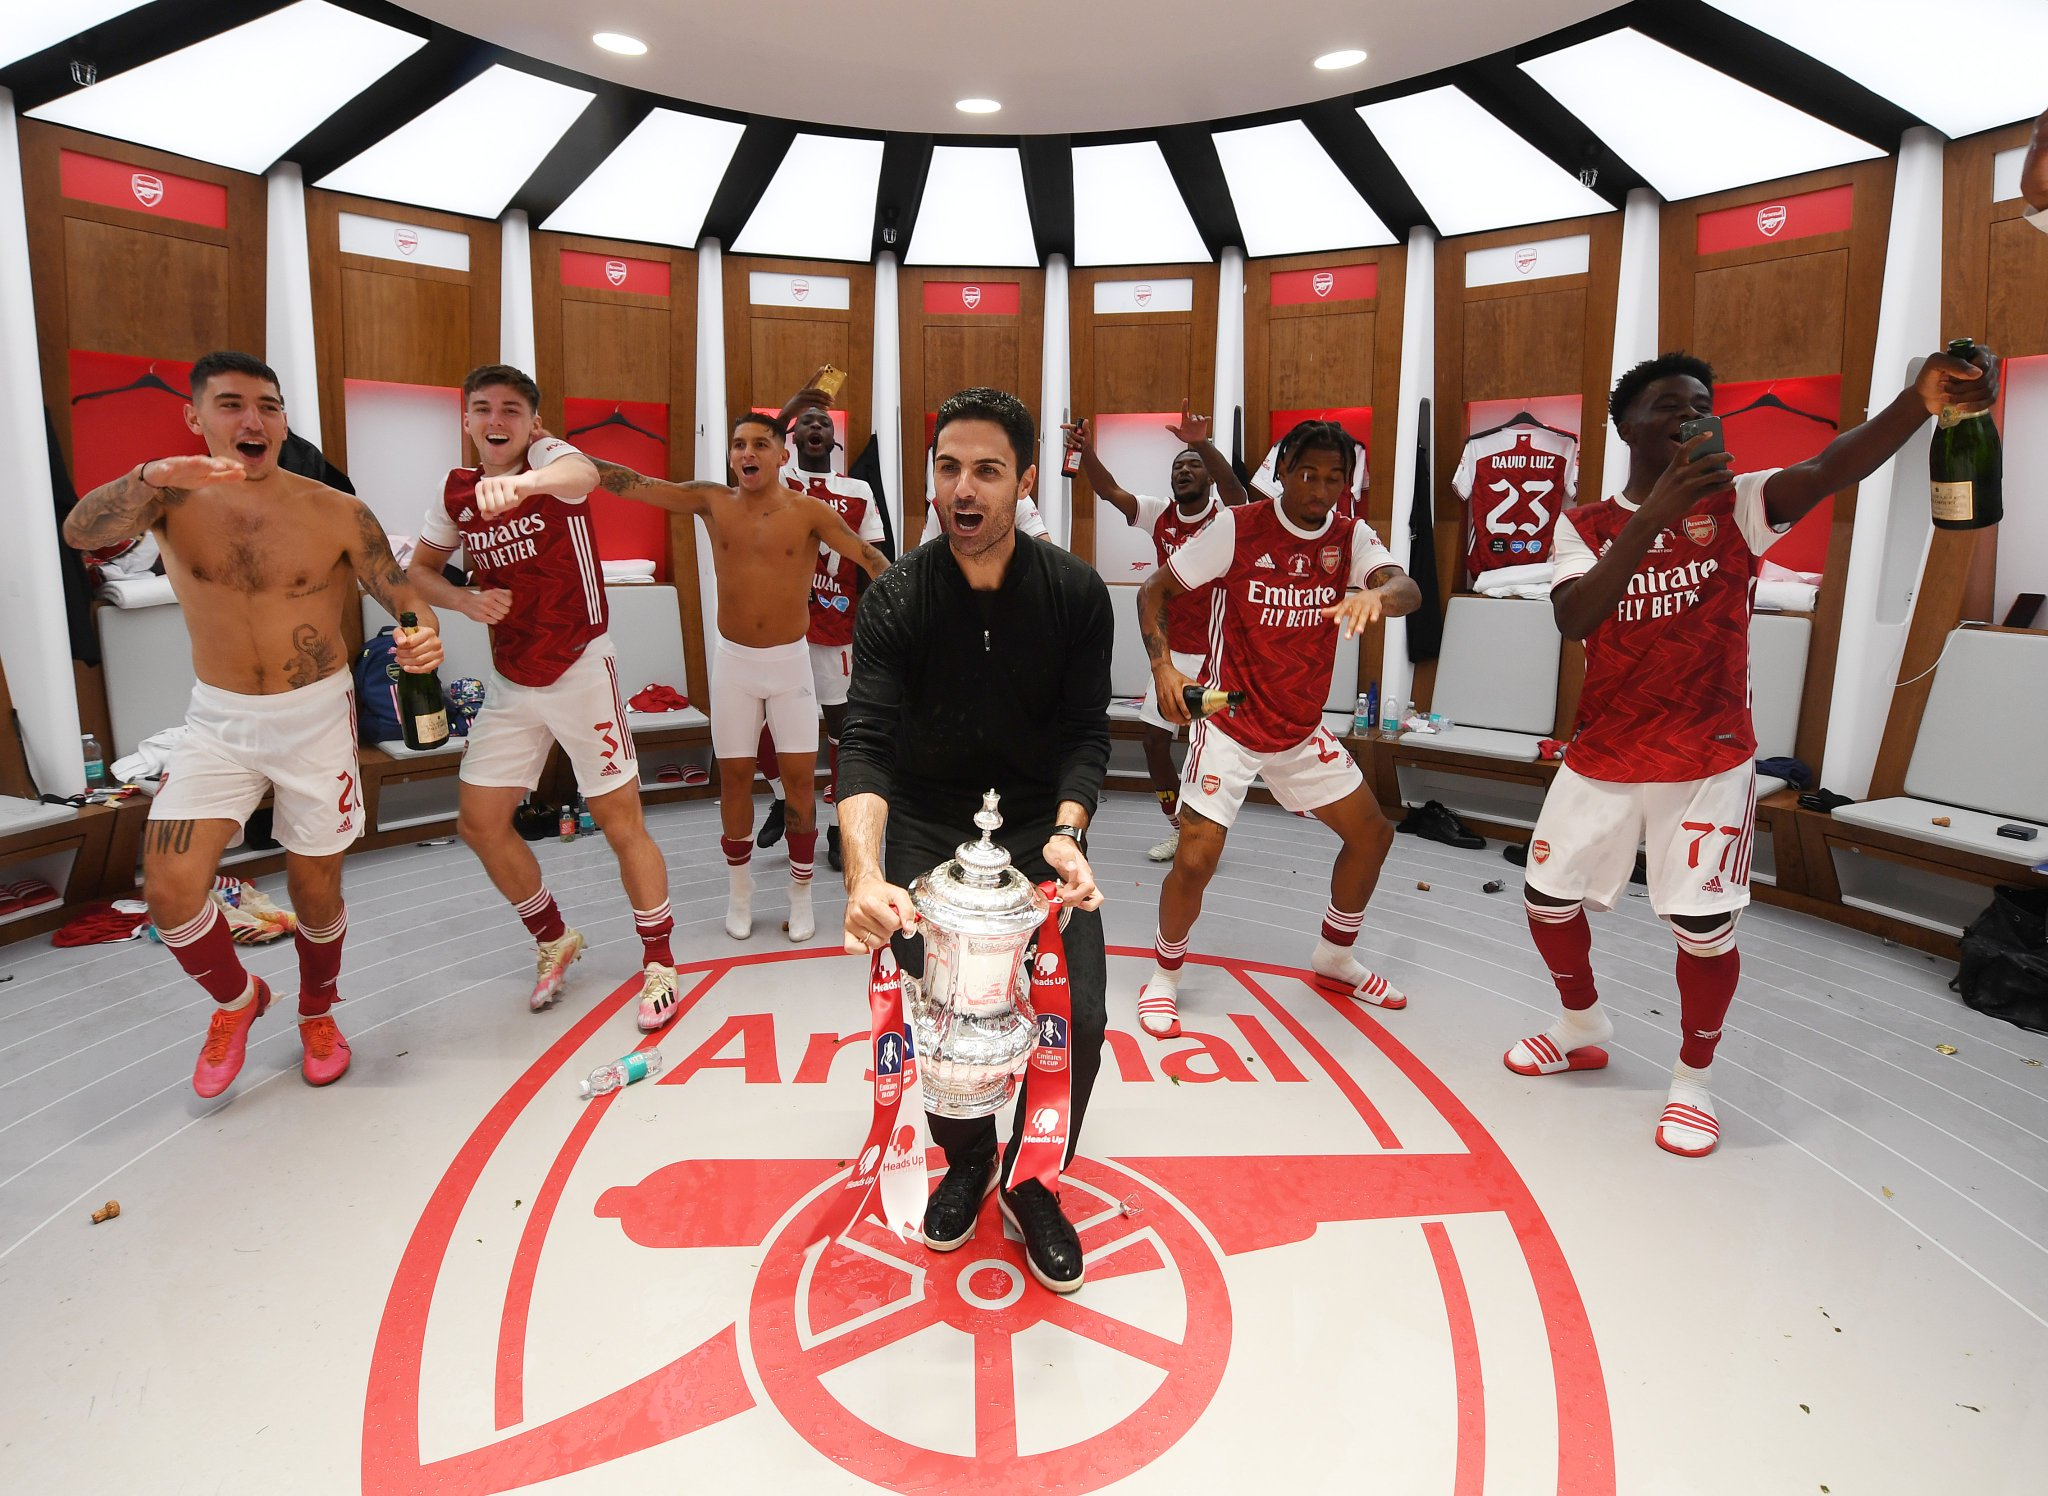 Mikel Arteta and Arsenal players celebrate in Wembley dressing room(via Arsenal.com)